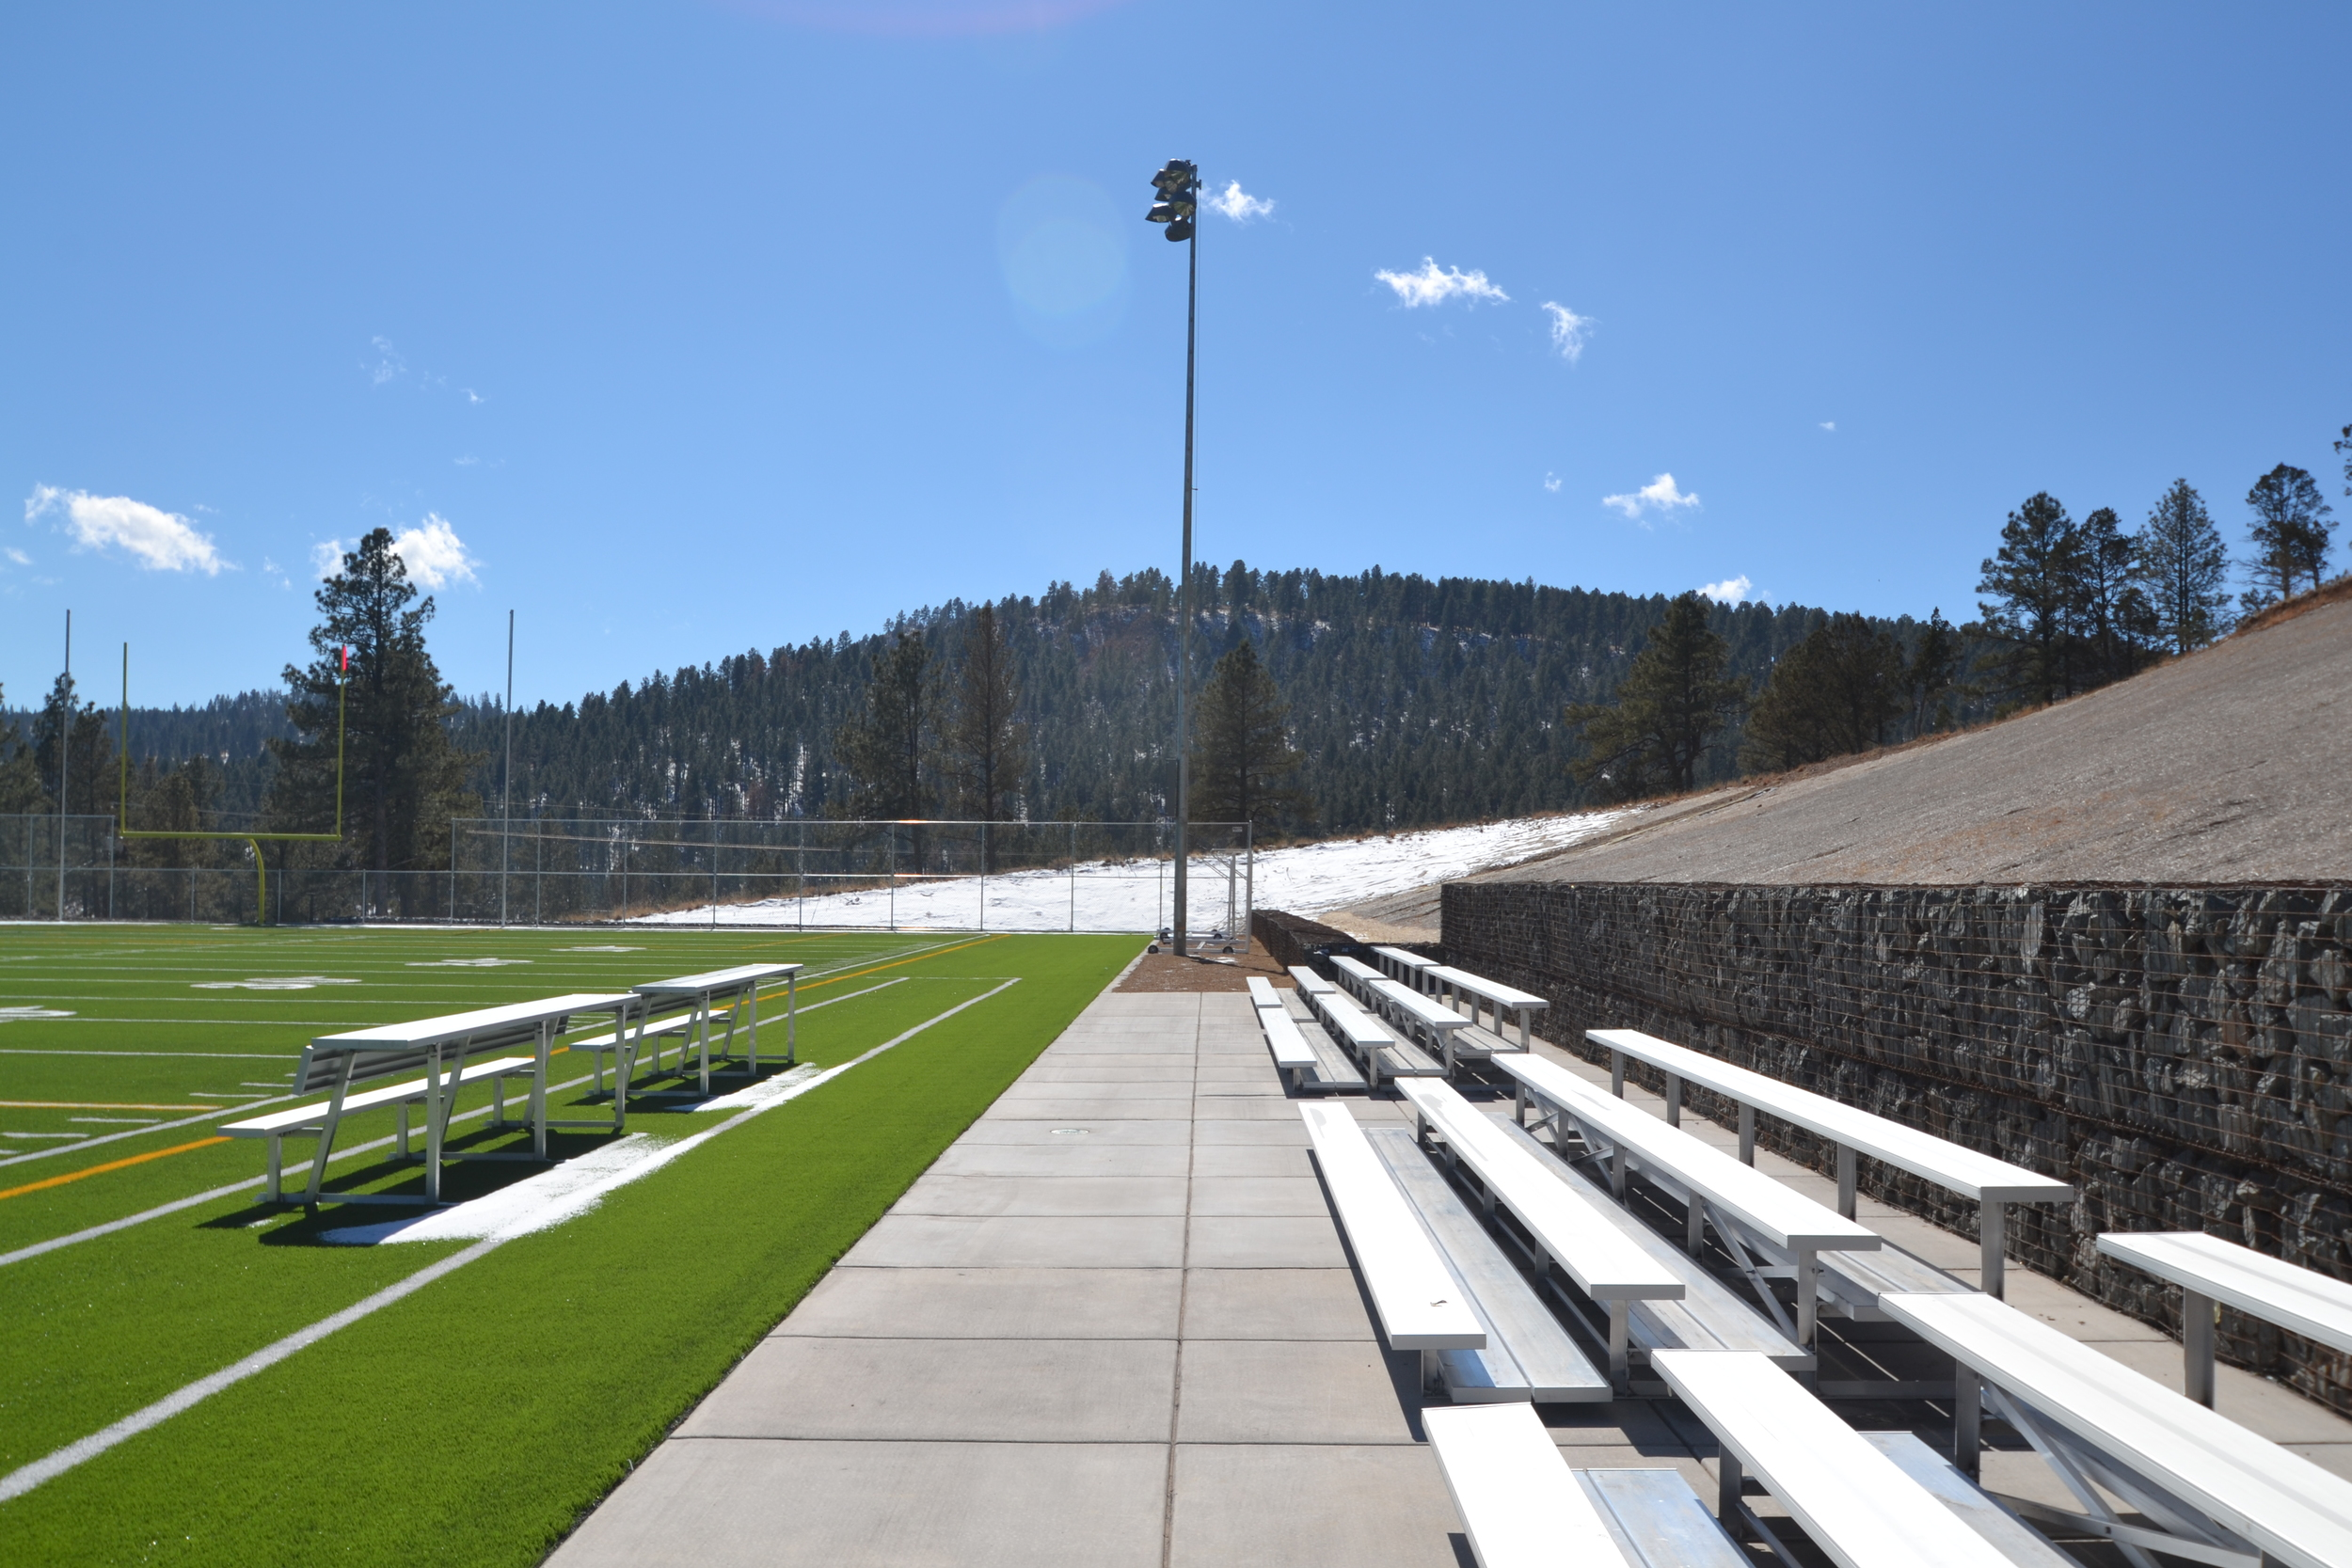 Artificial turf athletic field with bleachers